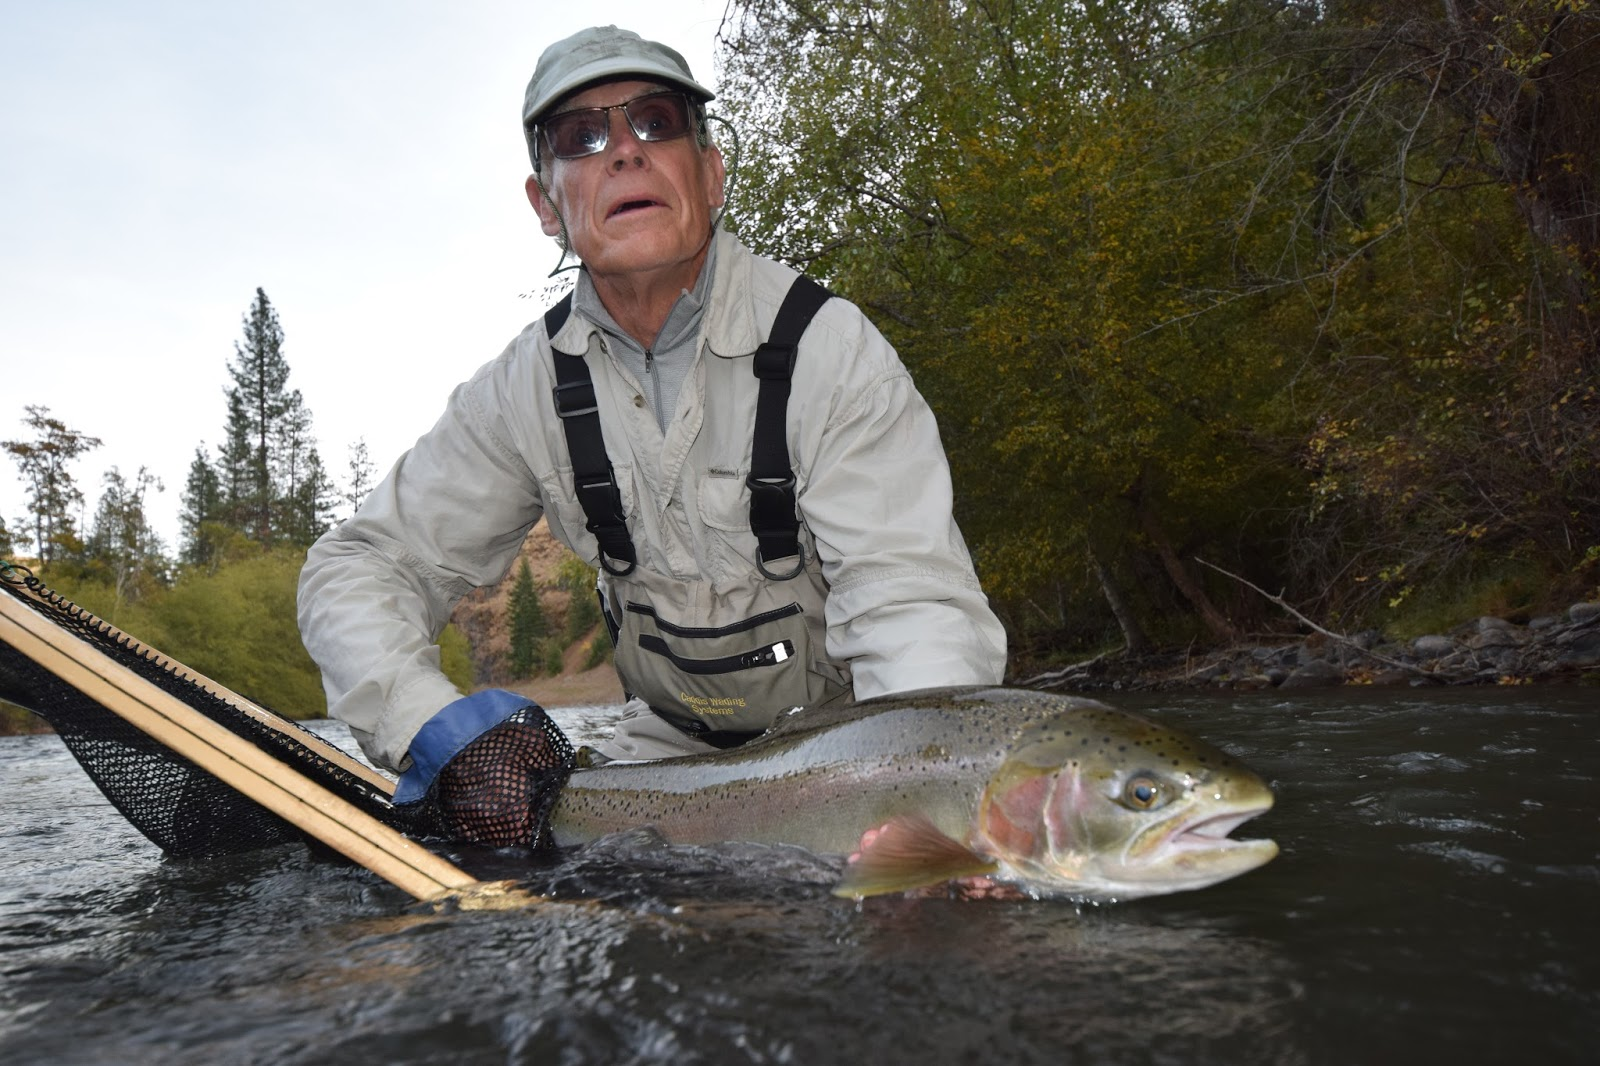 The evening hatch reports klickitat river report 10 18 15 for Klickitat river fishing report